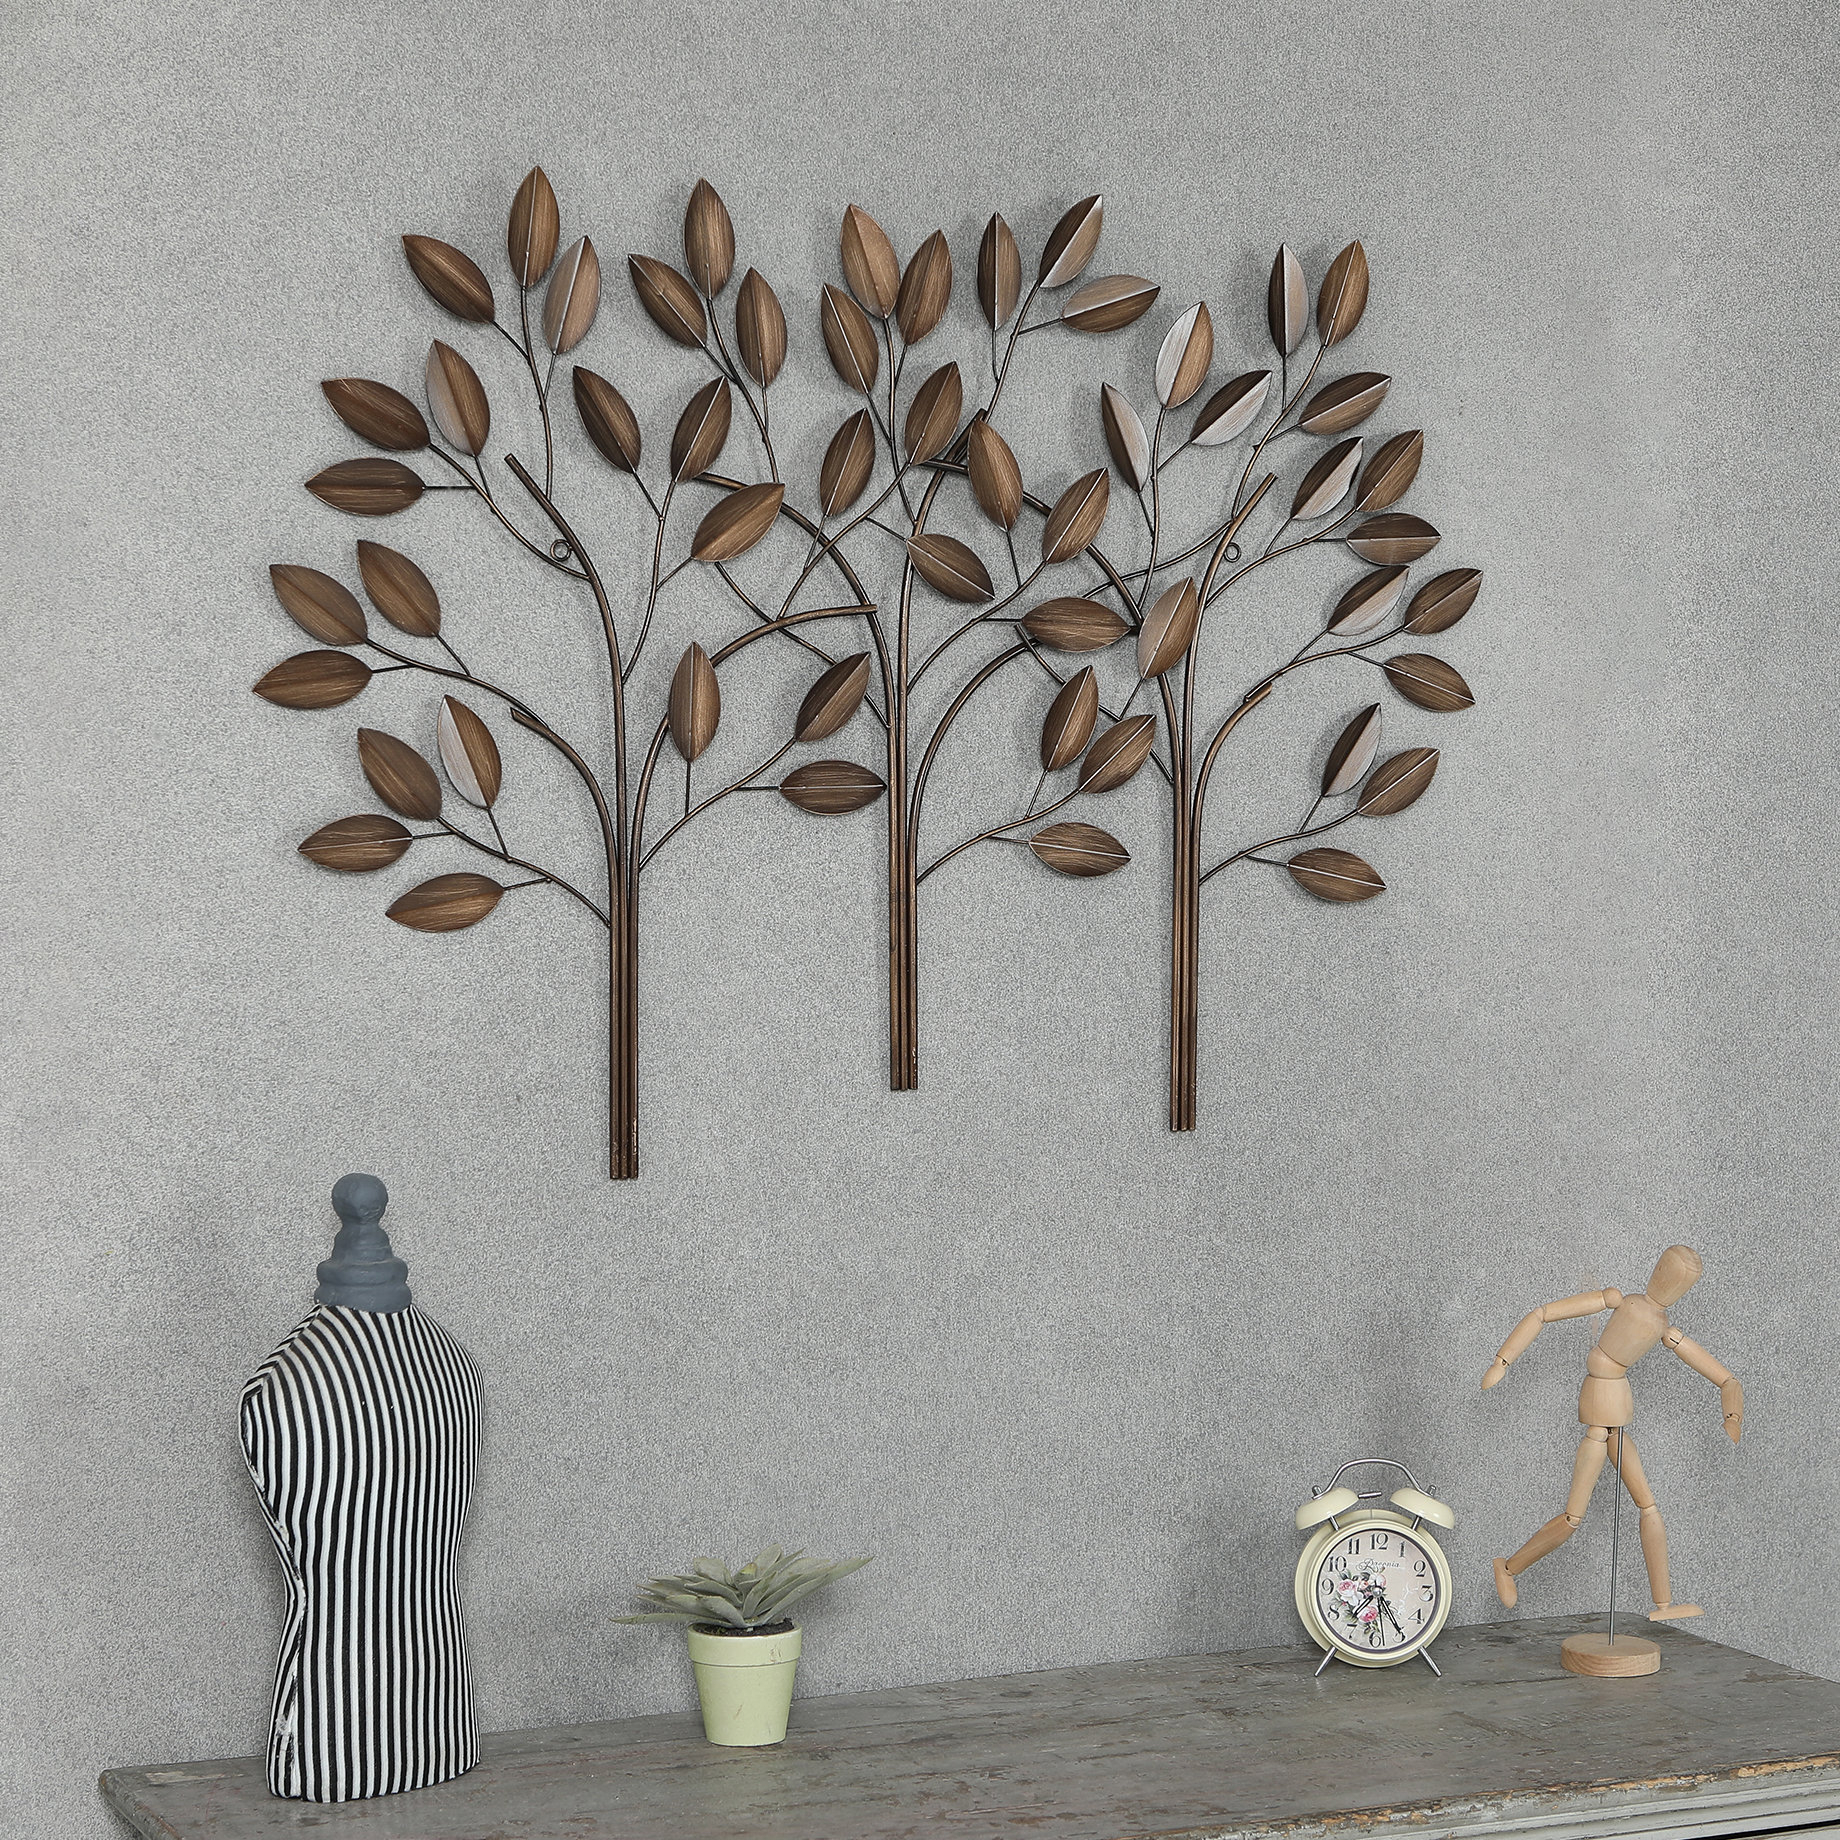 Windswept Tree Wall Decor | Wayfair With Windswept Tree Wall Decor By World Menagerie (View 8 of 30)